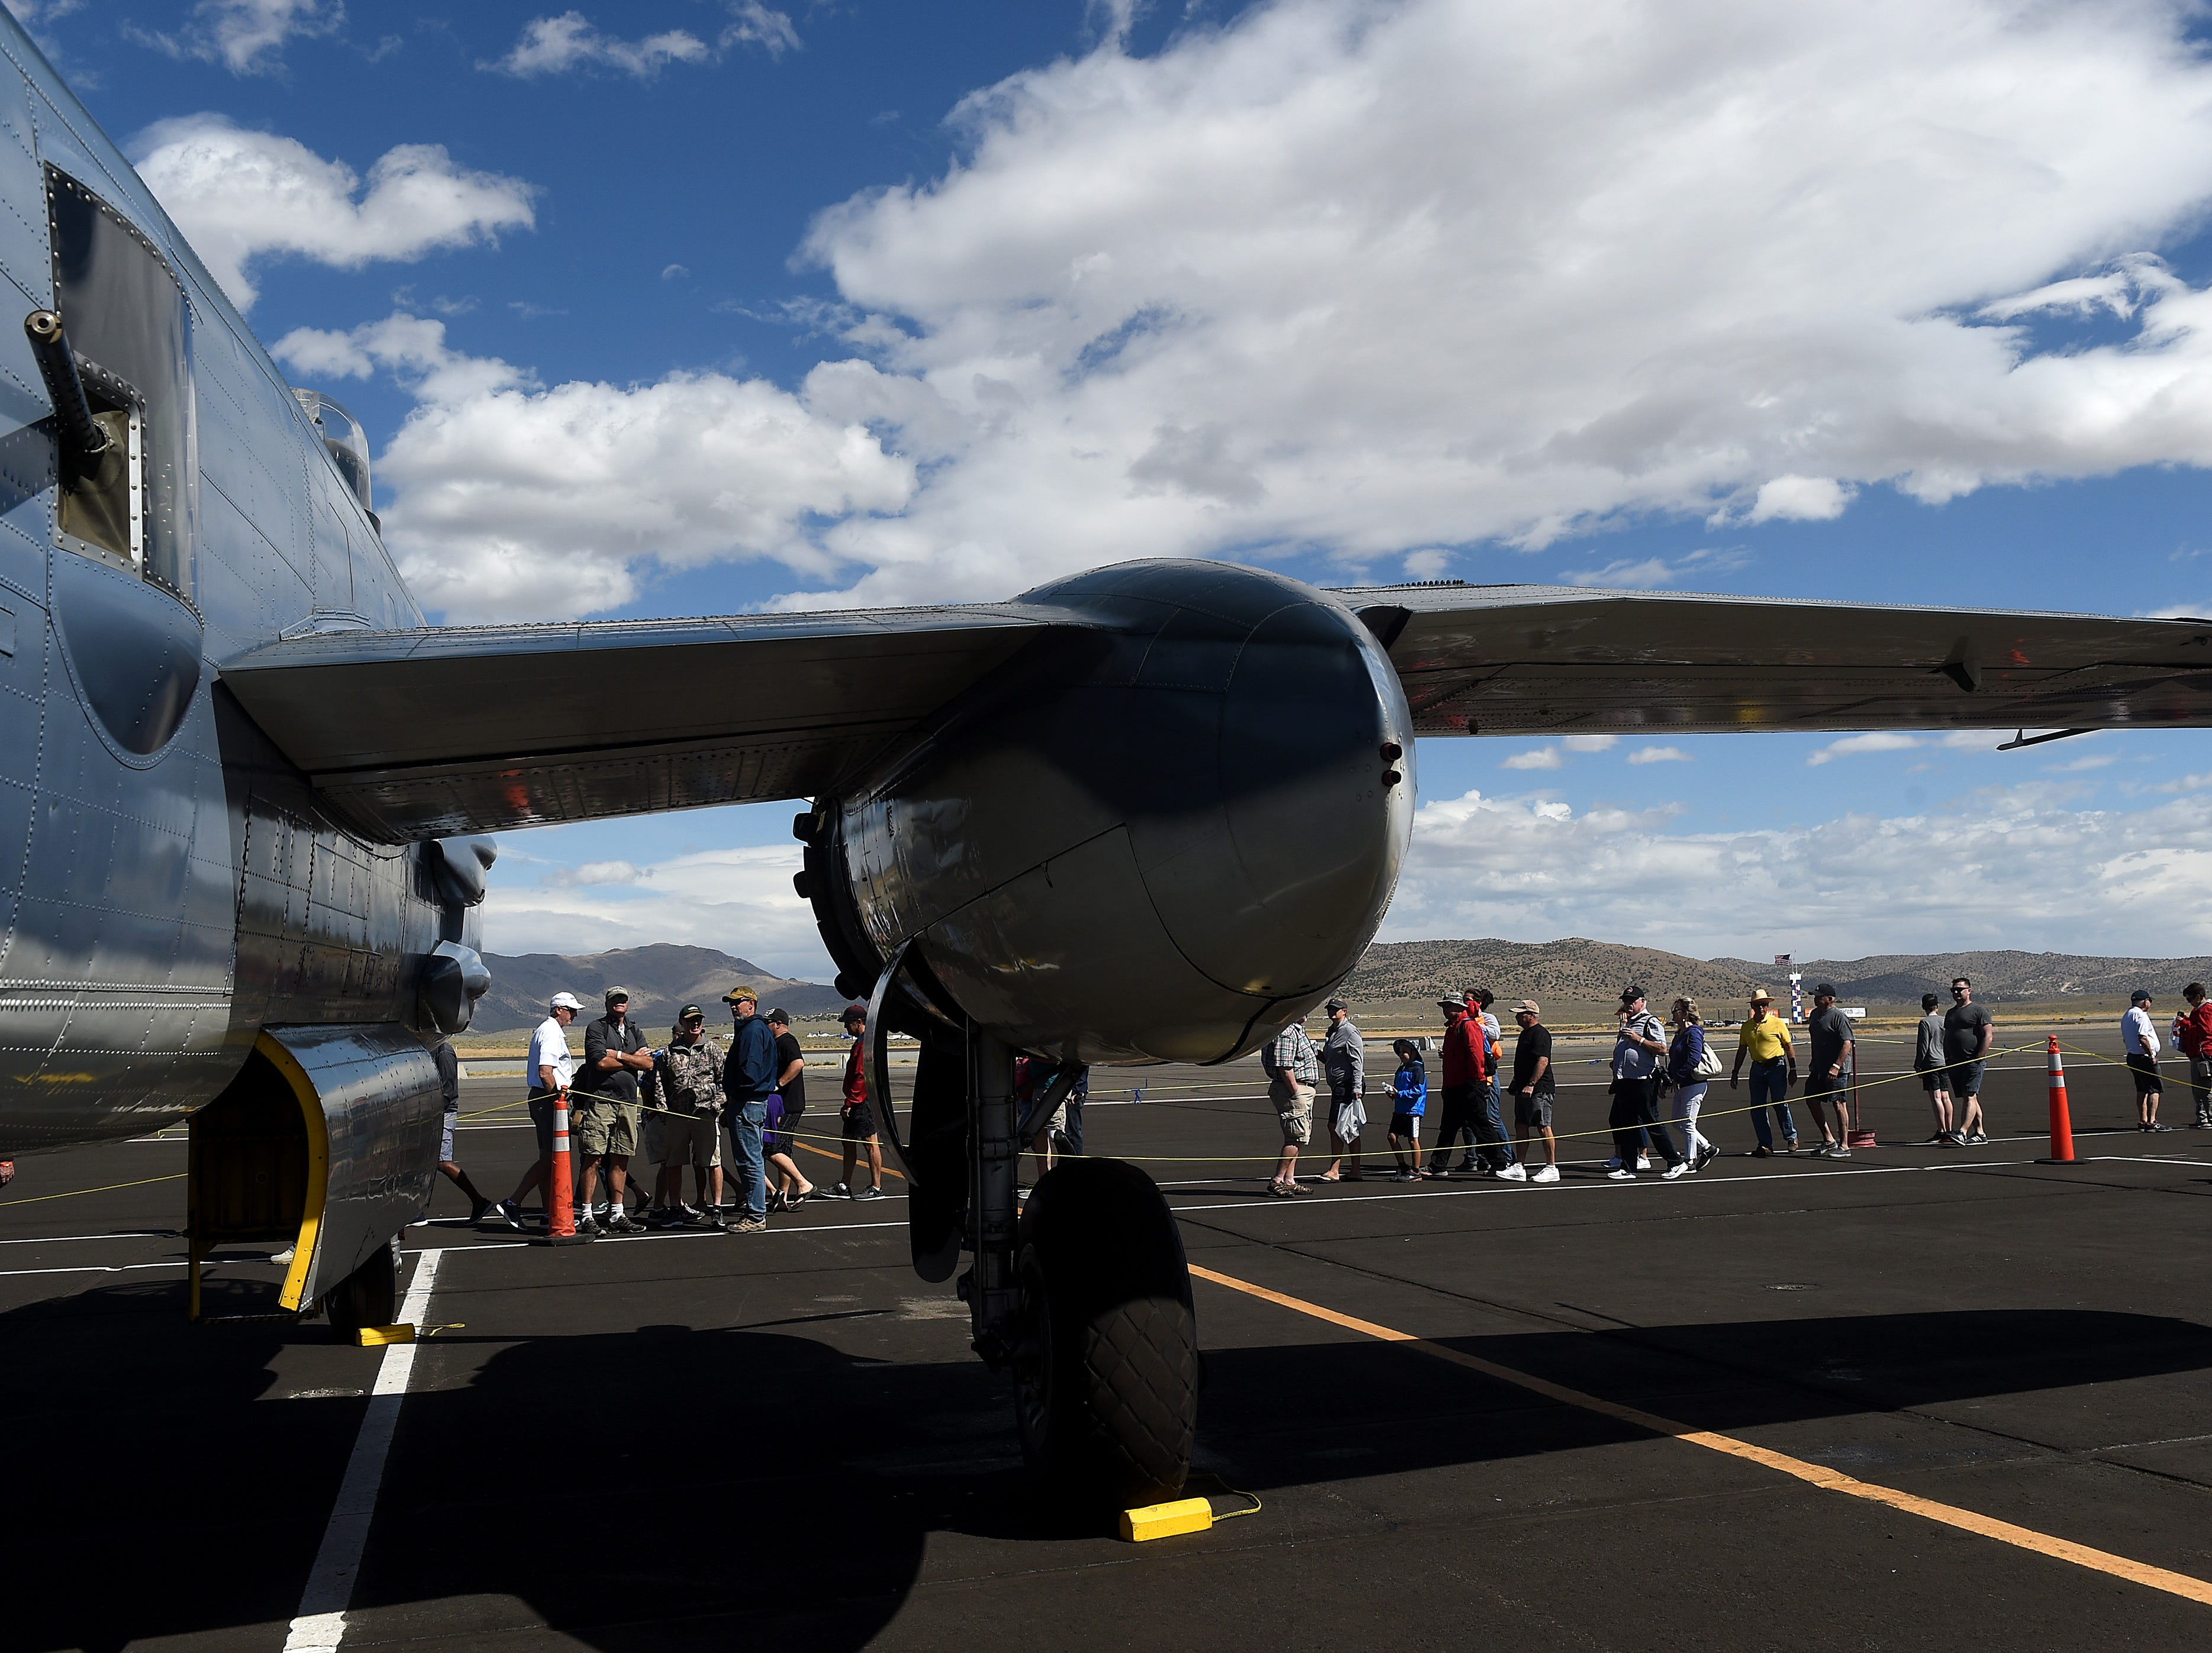 Race fans and are seen walking past a PBJ B-25 Marine Bomber at the STIHL National Championship Air Races at Stead Airport north of Reno on Sept. 15, 2018.